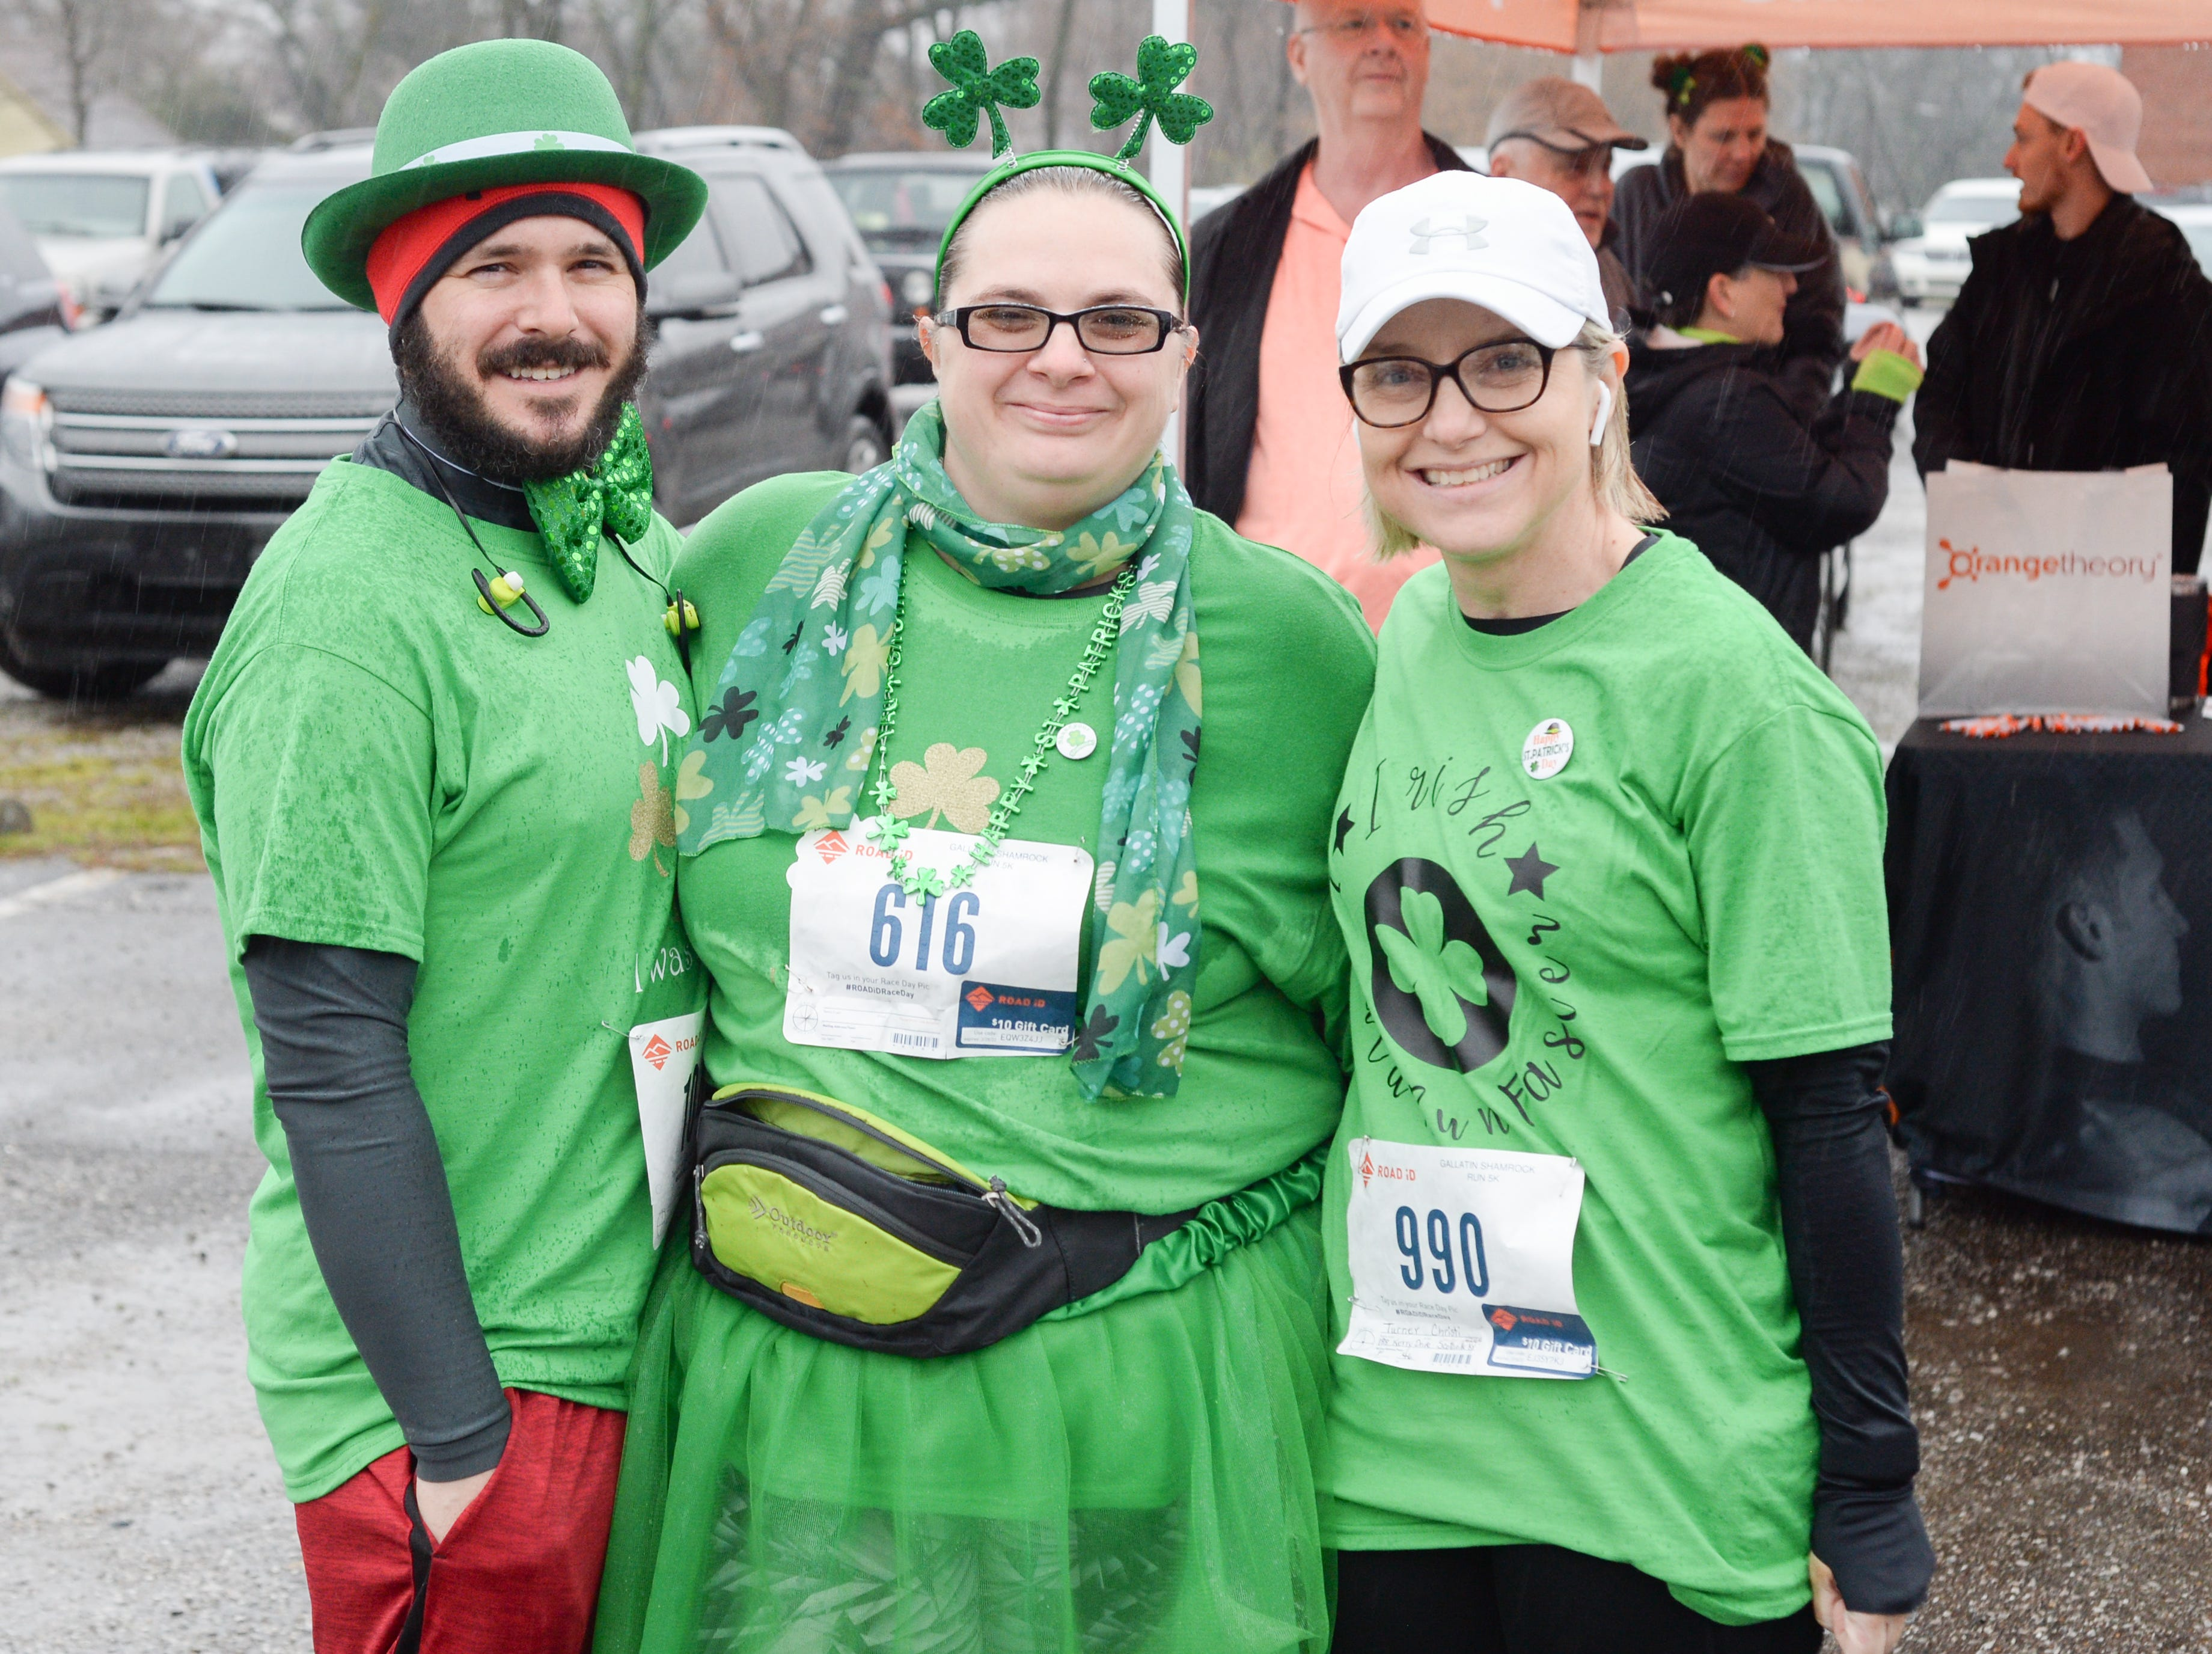 Green was the most popular color at the Gallatin Shamrock Run on Saturday, March 9.